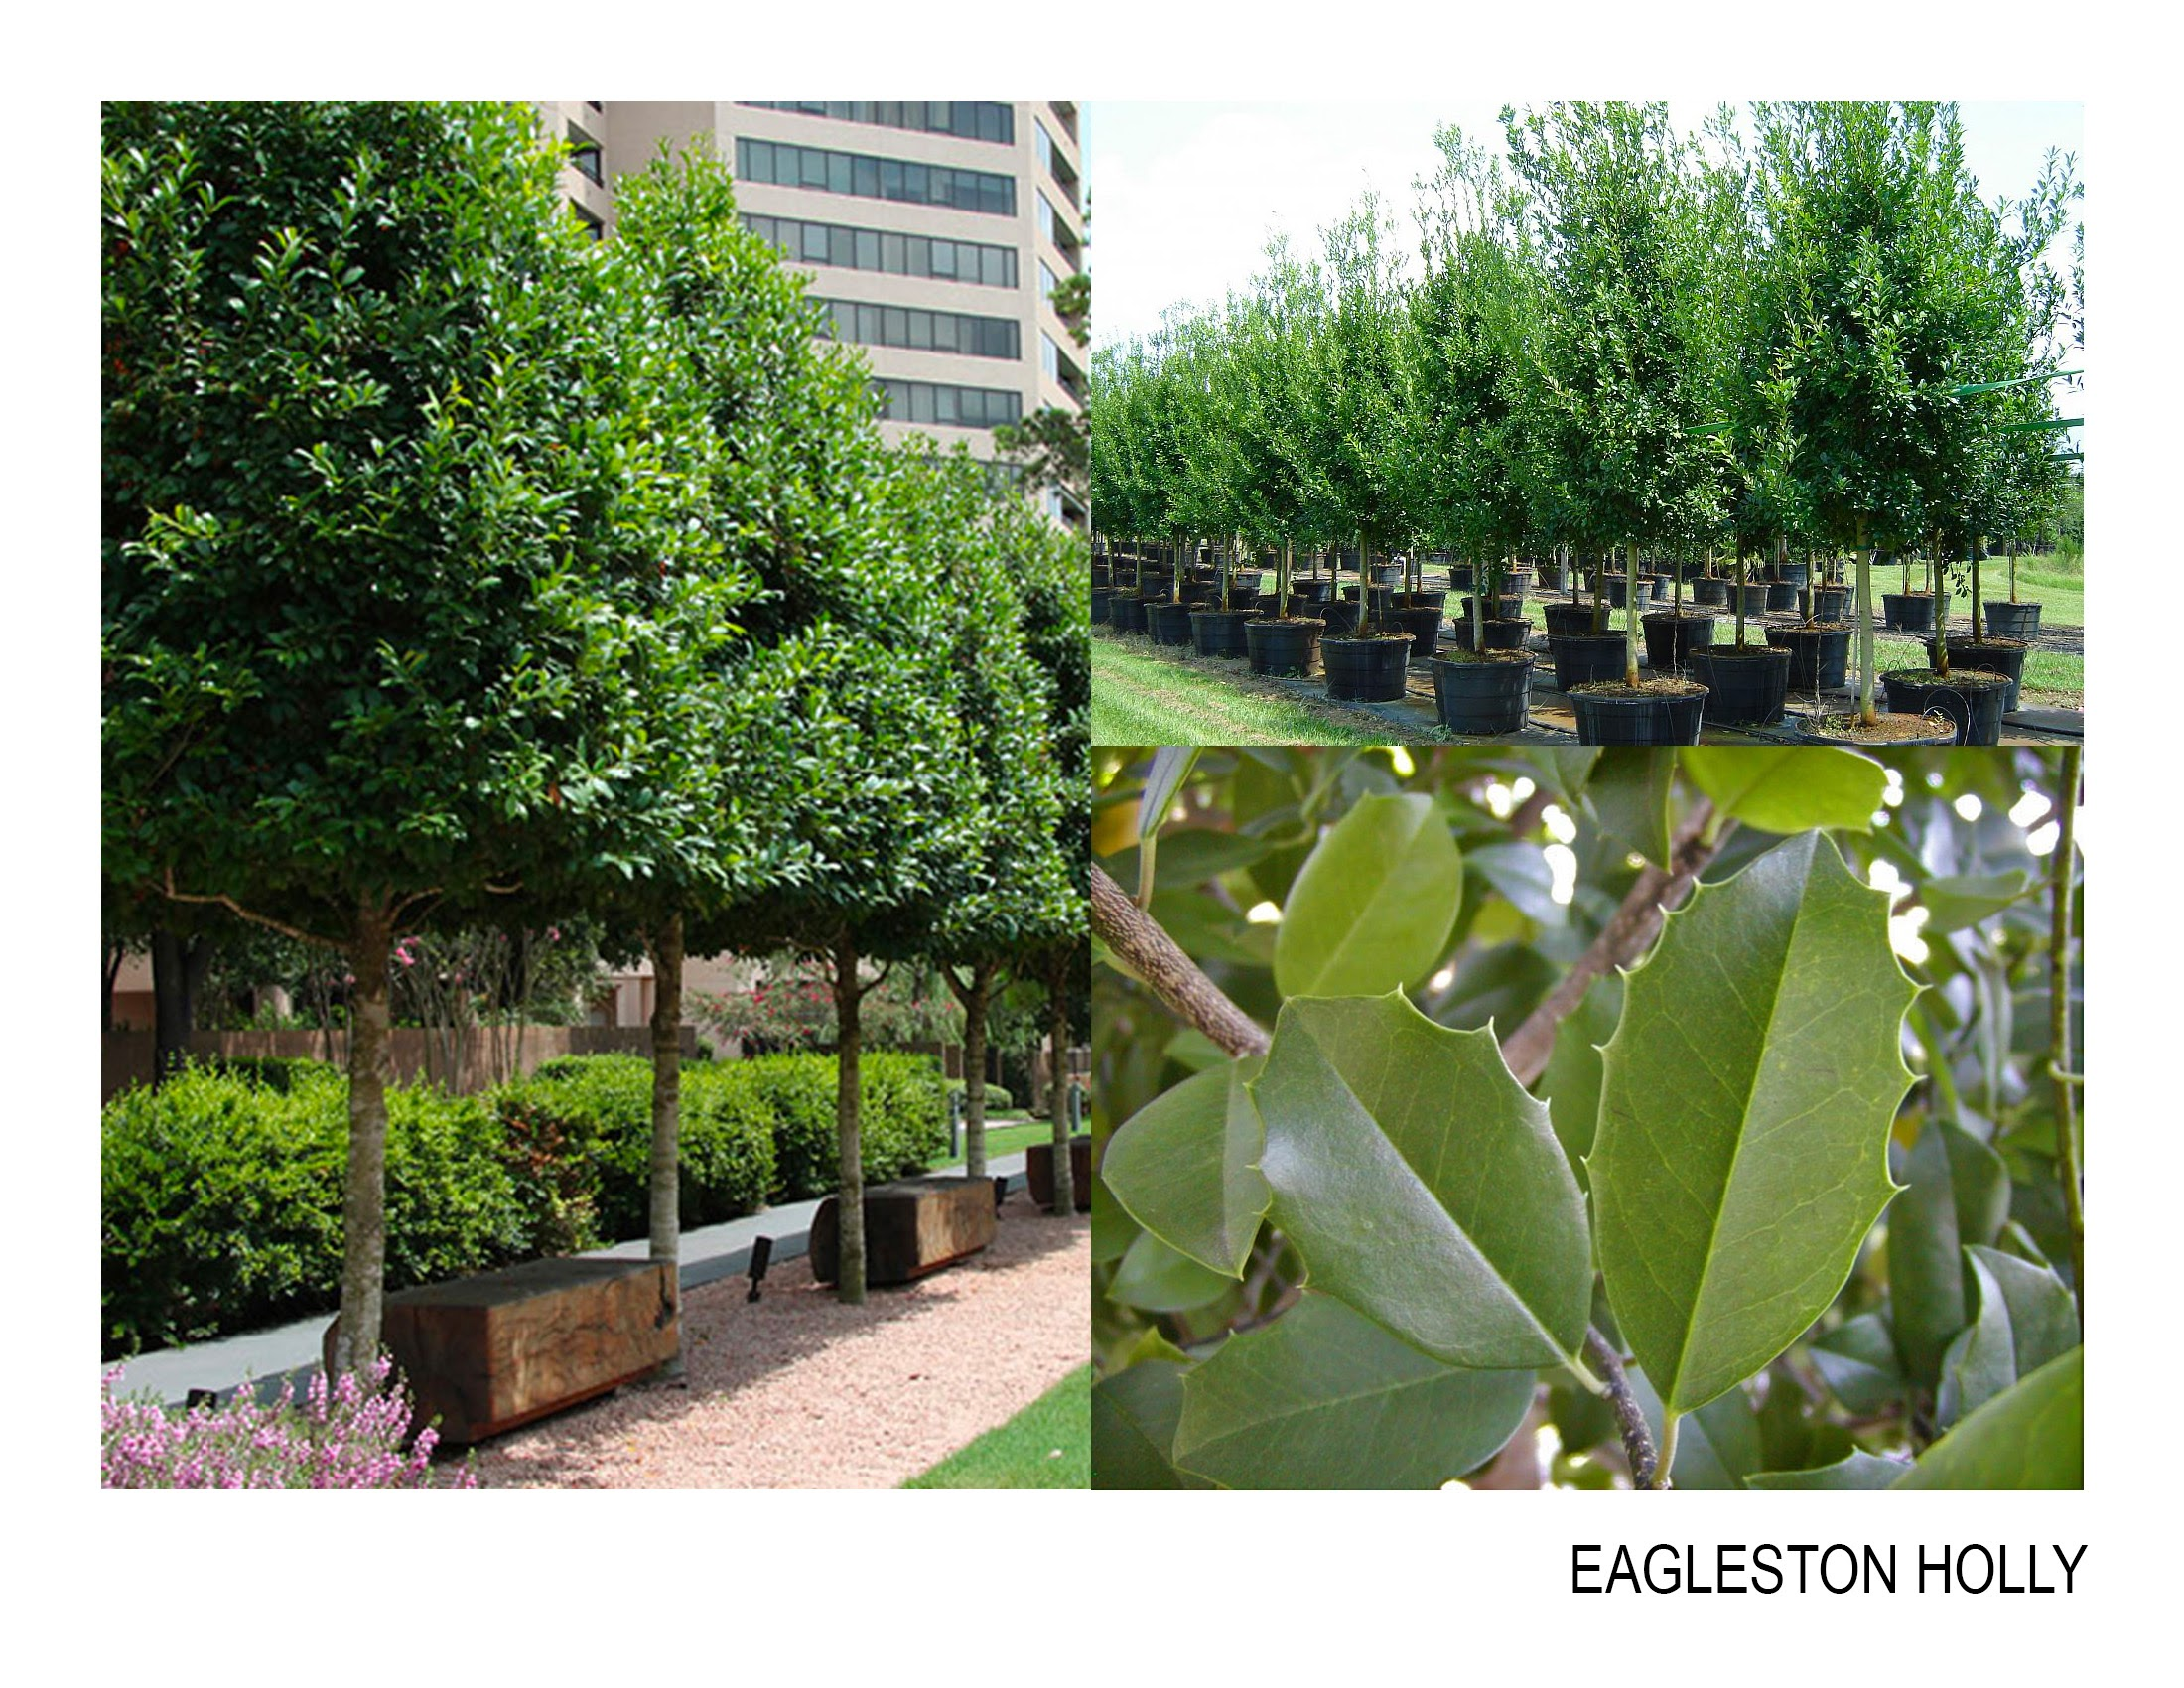 eagleston holly.jpg